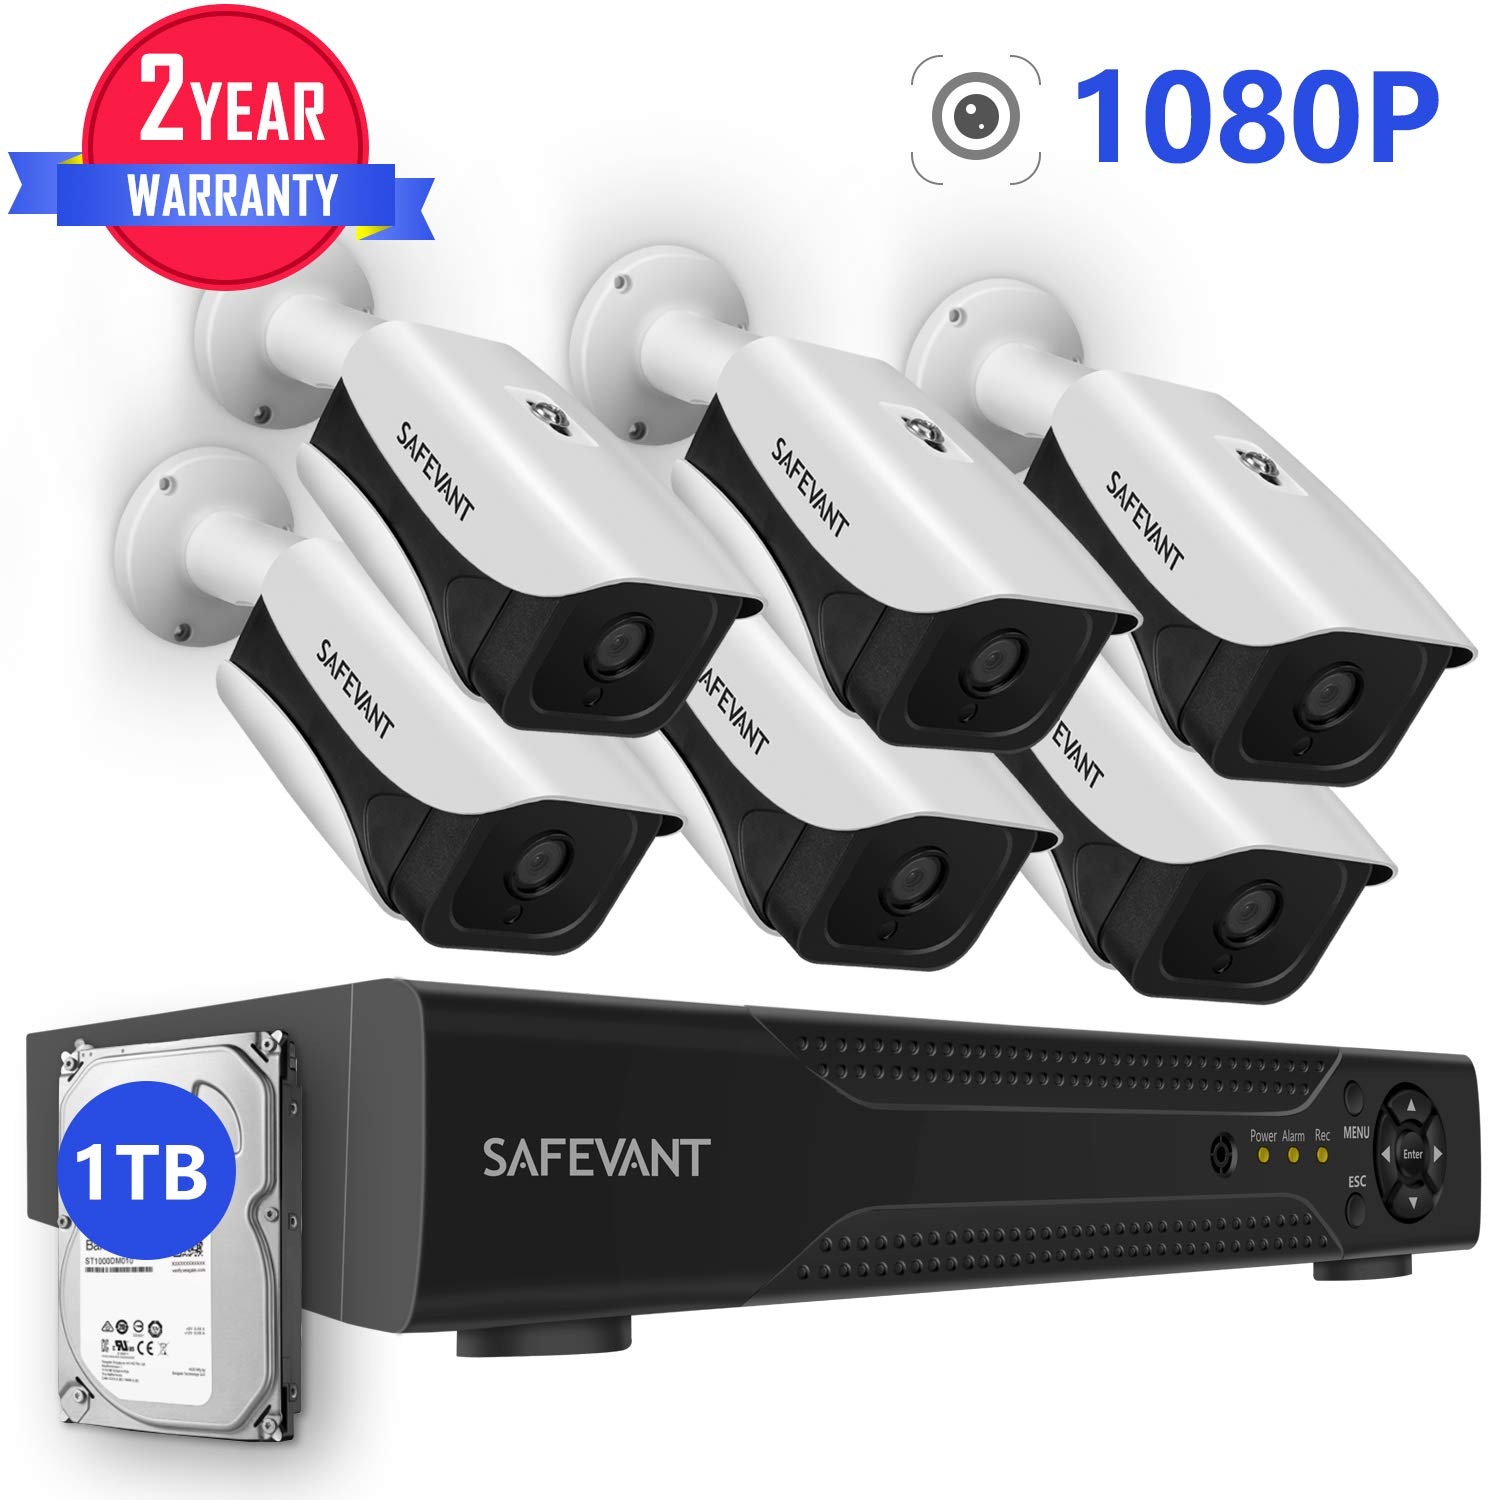 6 Camera Security System with 1TB Hard Drive,SAFEVANT 8CH DVR Kits 1080P 2.0MP Outdoor Indoor CCTV Cameras with Night Vision by SAFEVANT